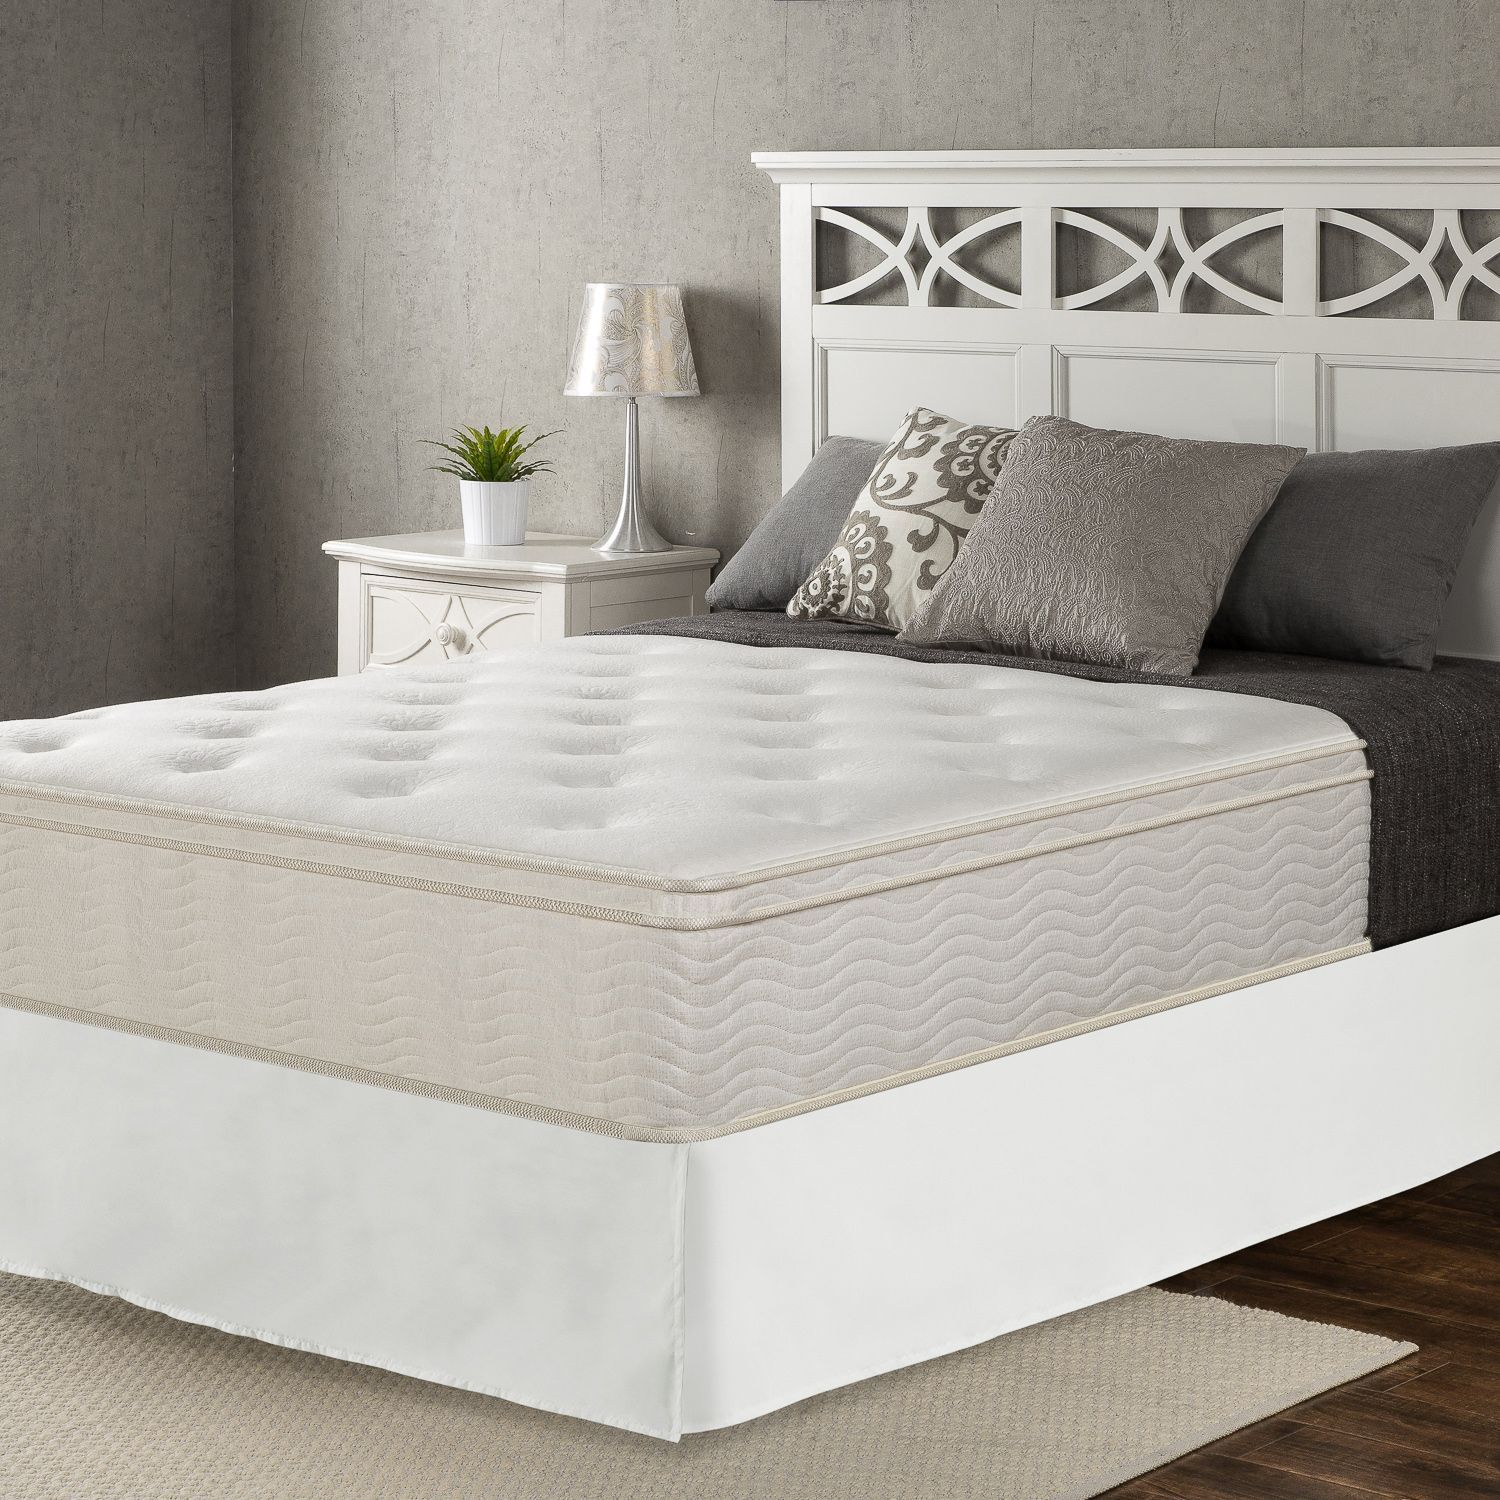 Night Therapy Classic 12 Euro Box Top Spring Mattress And Smartbase Set Cabeceras